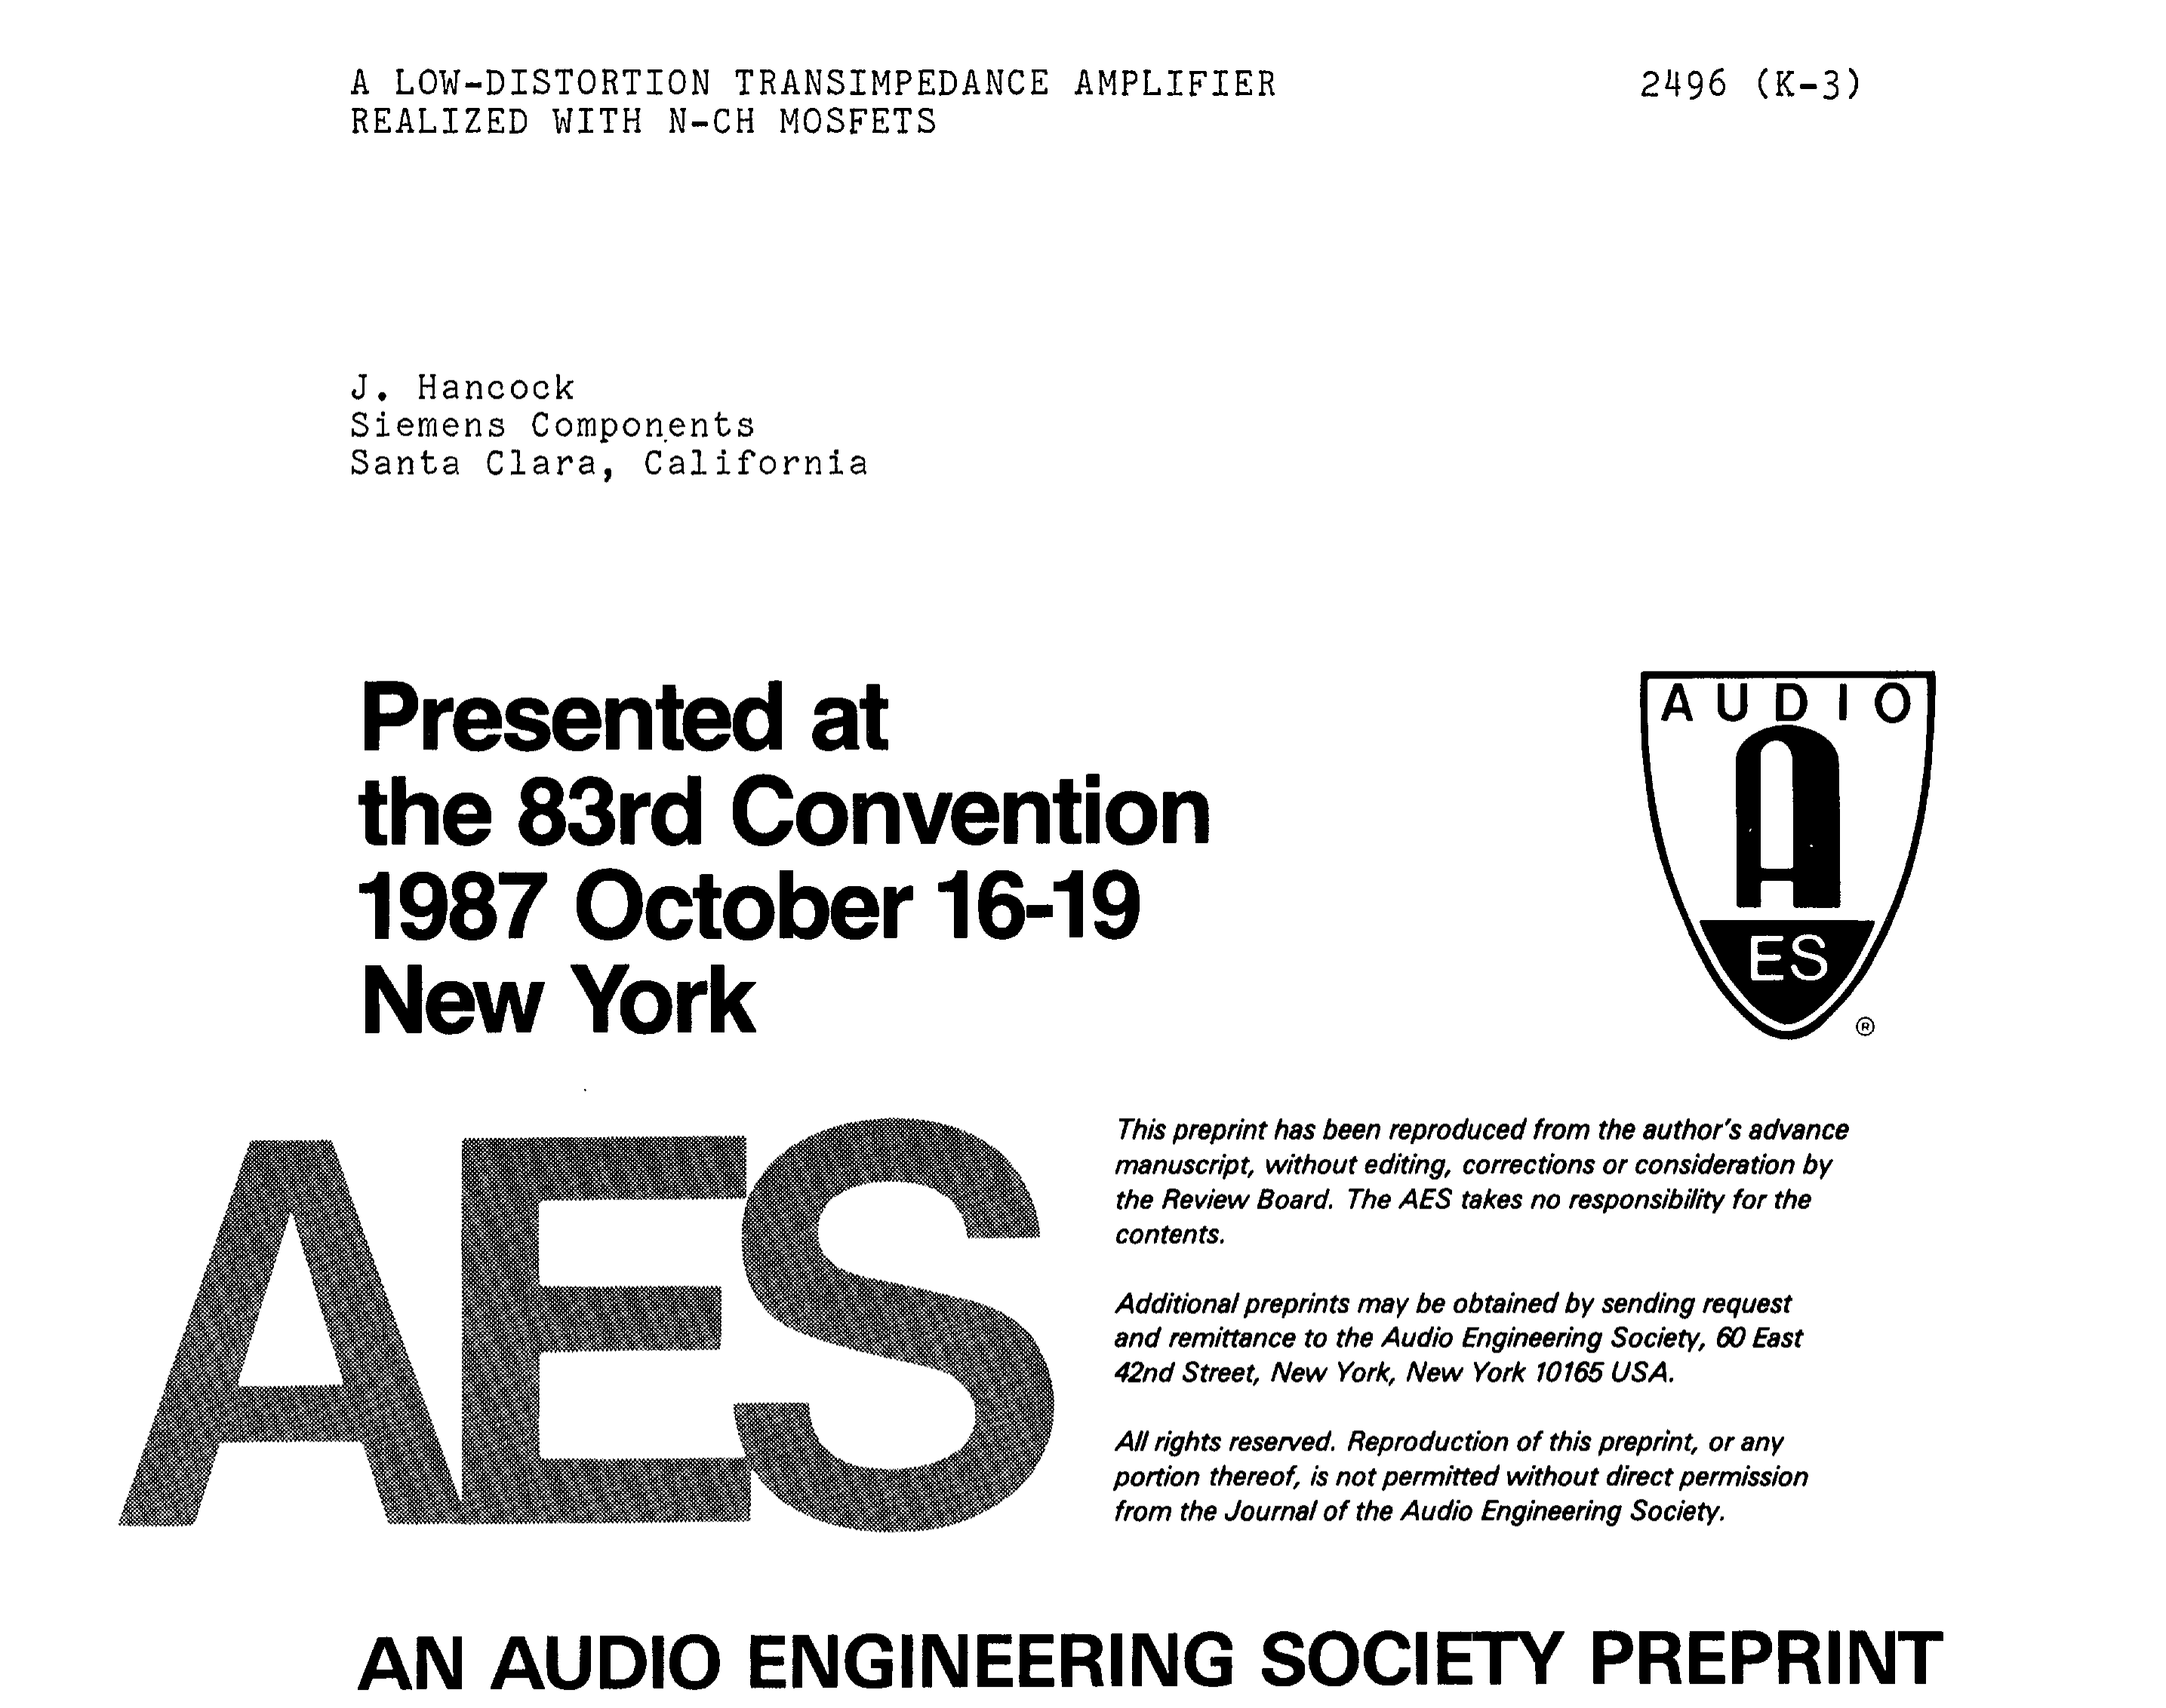 aes e library a low distortion transimpedance amplifier realizedaes e library